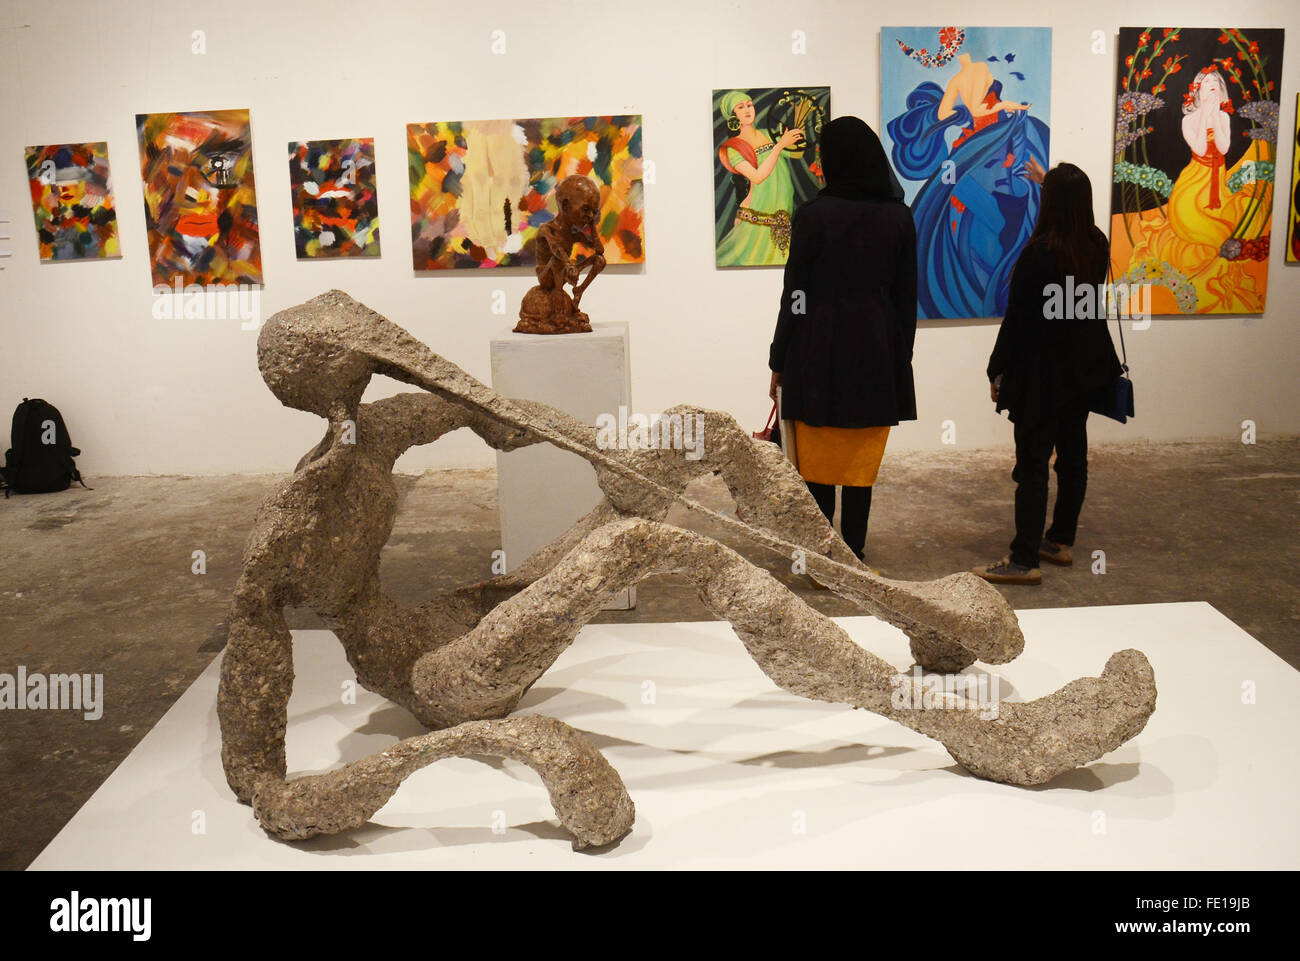 Lahore, Pakistan. 03rd Feb, 2016. Pakistani Traditional Arts and Fine Arts Students taking keen interest in art - Stock Image